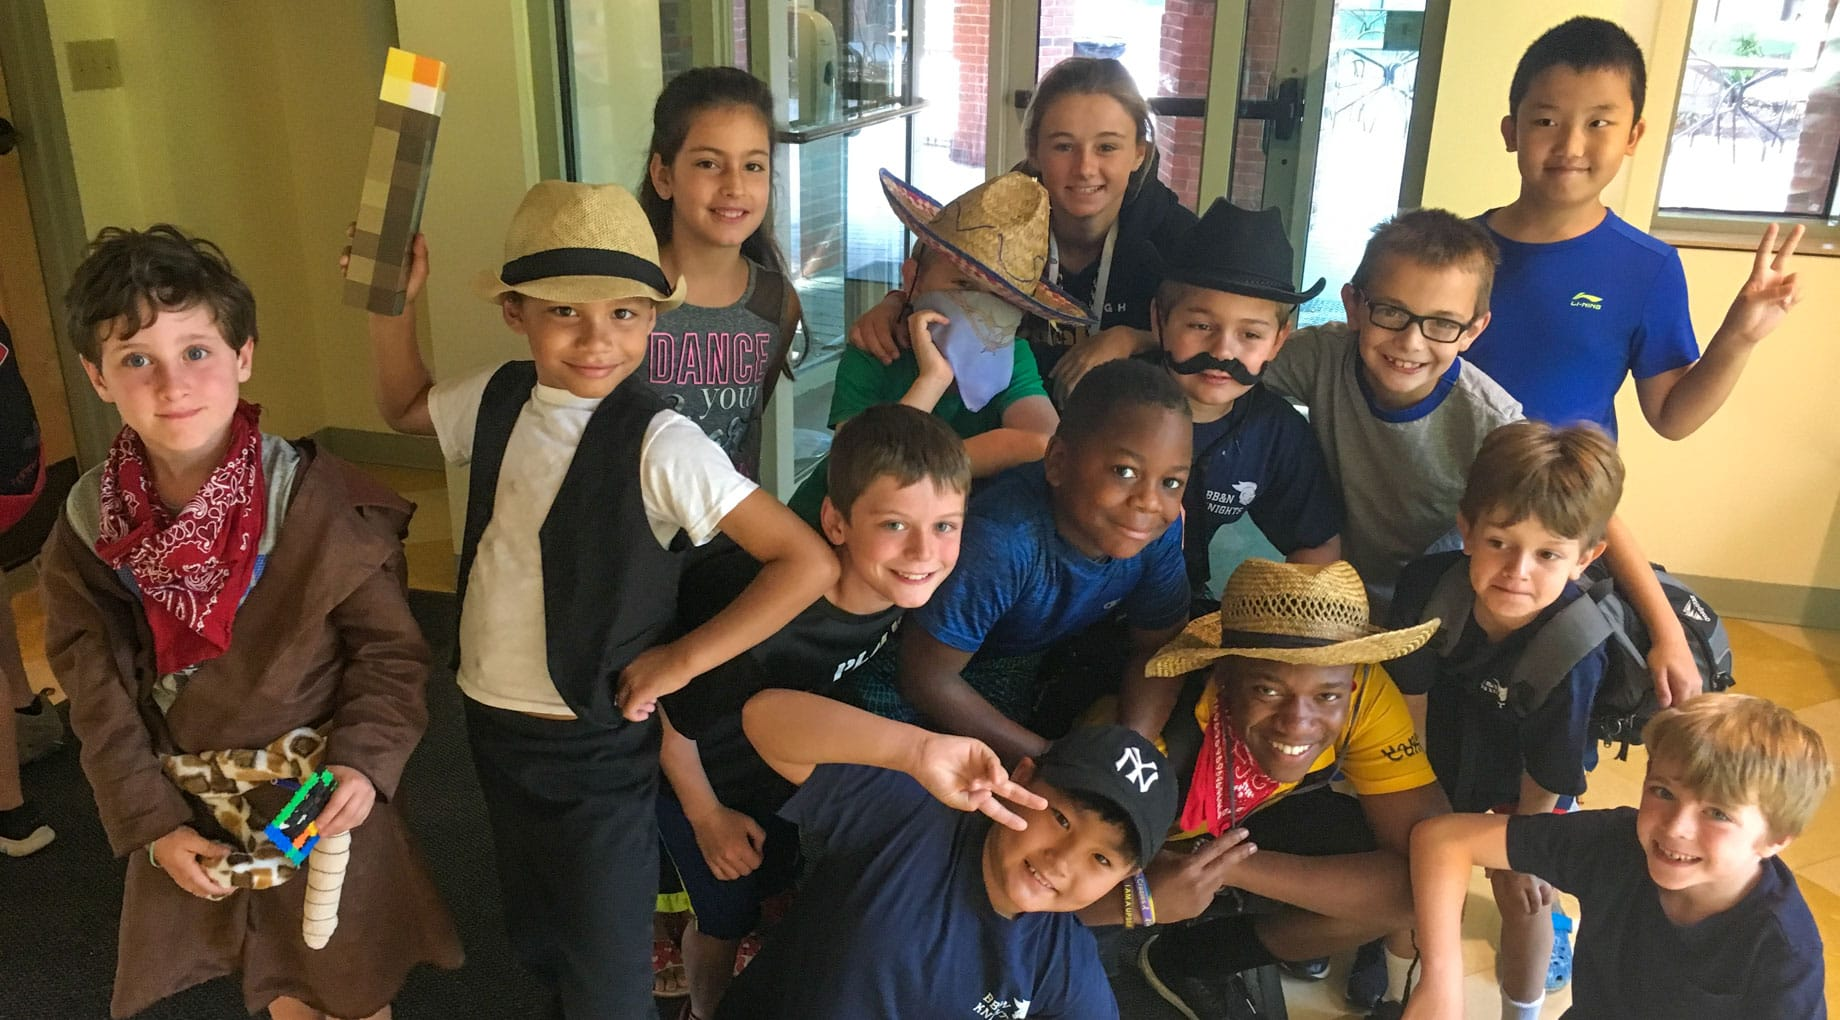 Campers wearing Western costumes